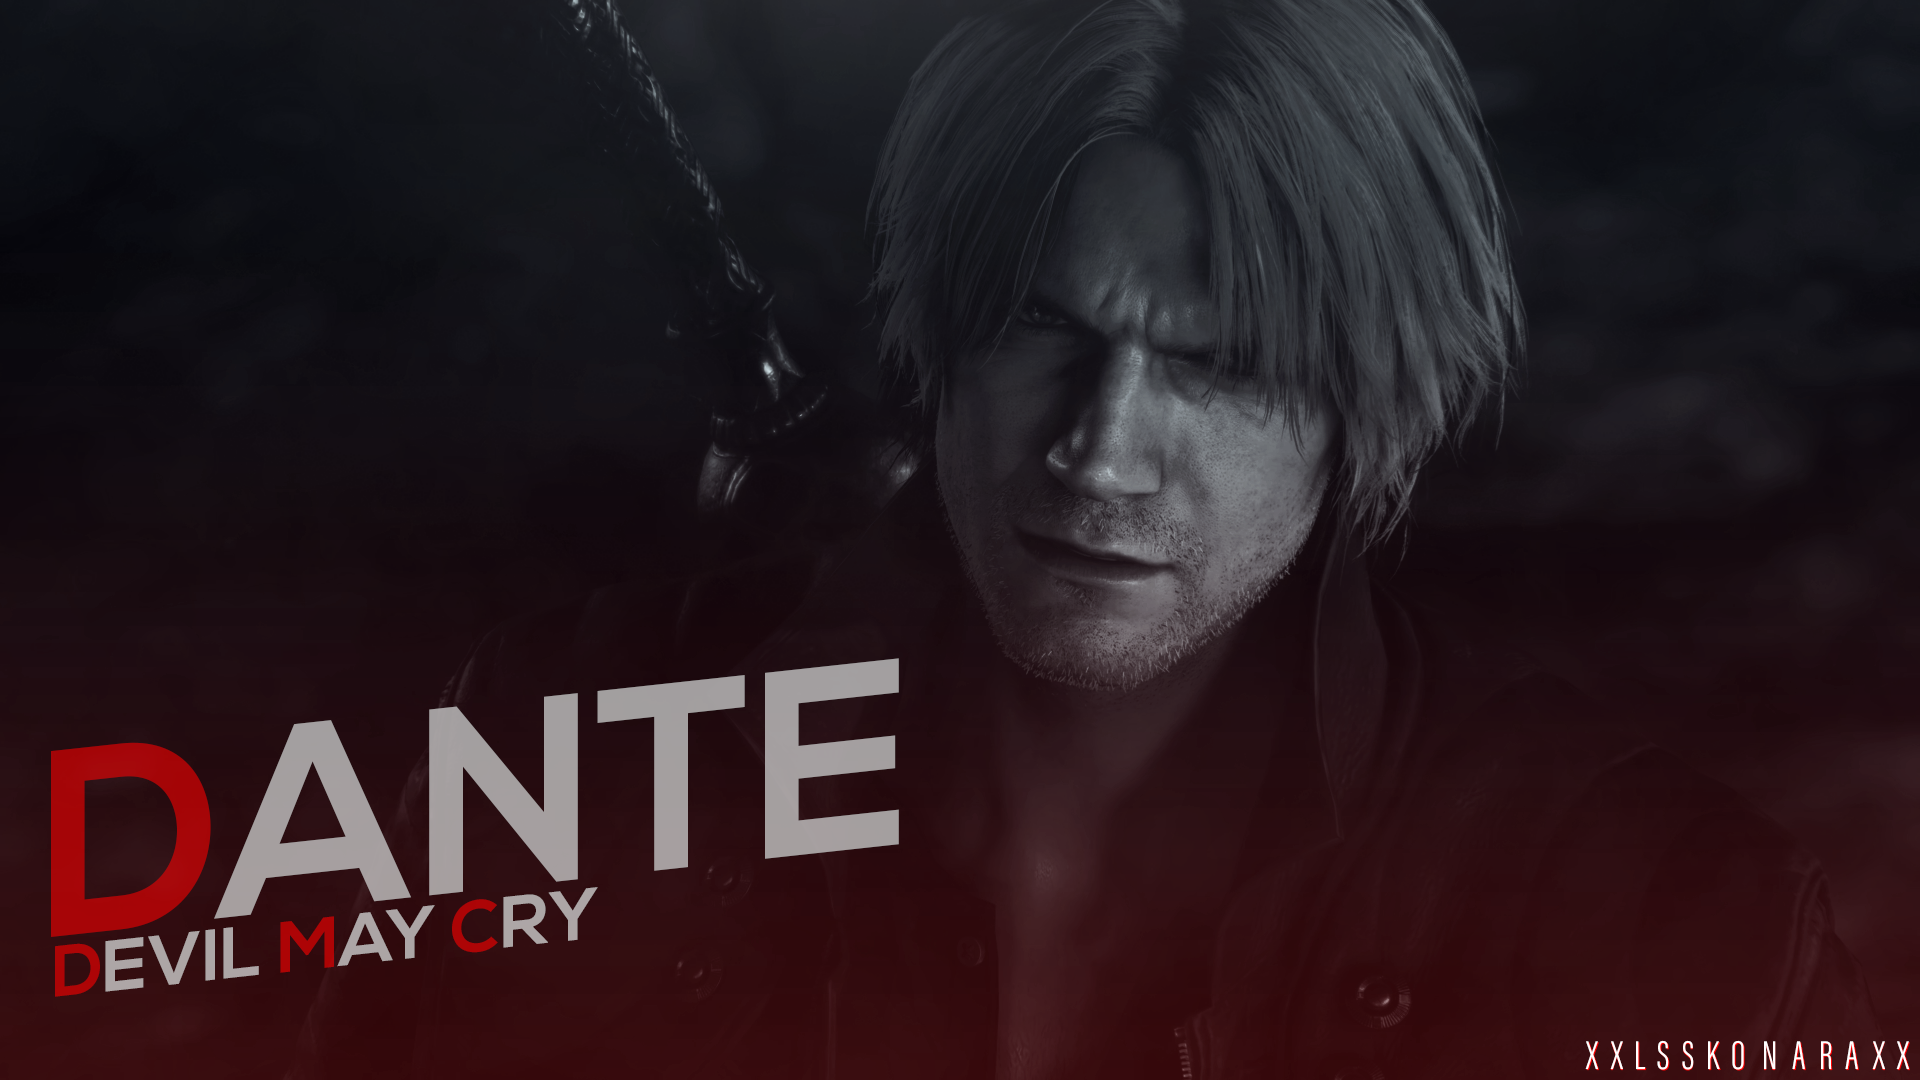 Dante Devil May Cry 5 Devil May Cry Oboi 41820799